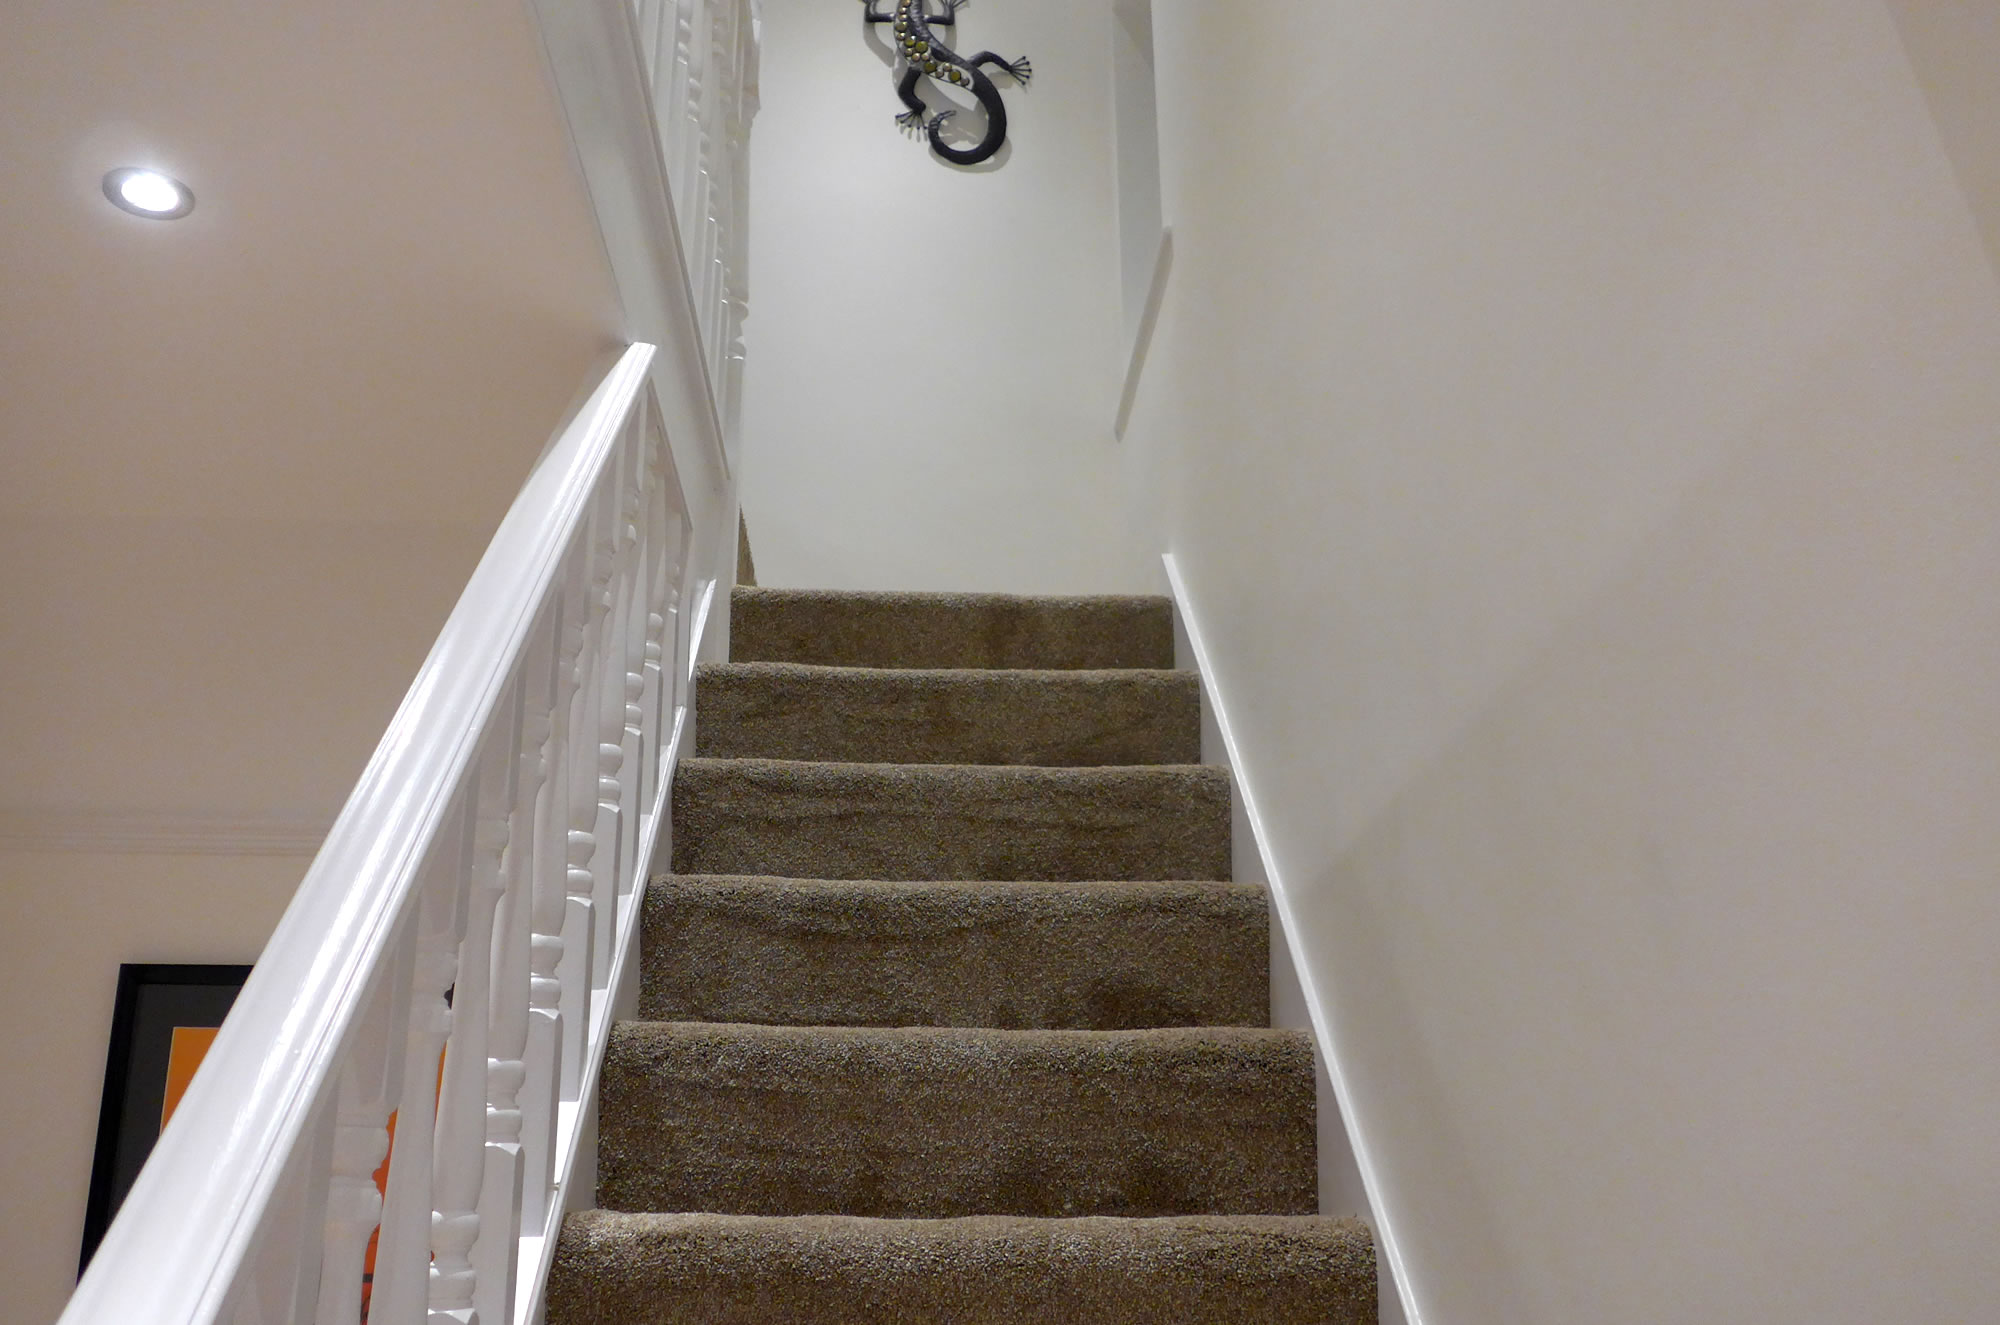 Regents Park Southampton, staircase and hallway painted